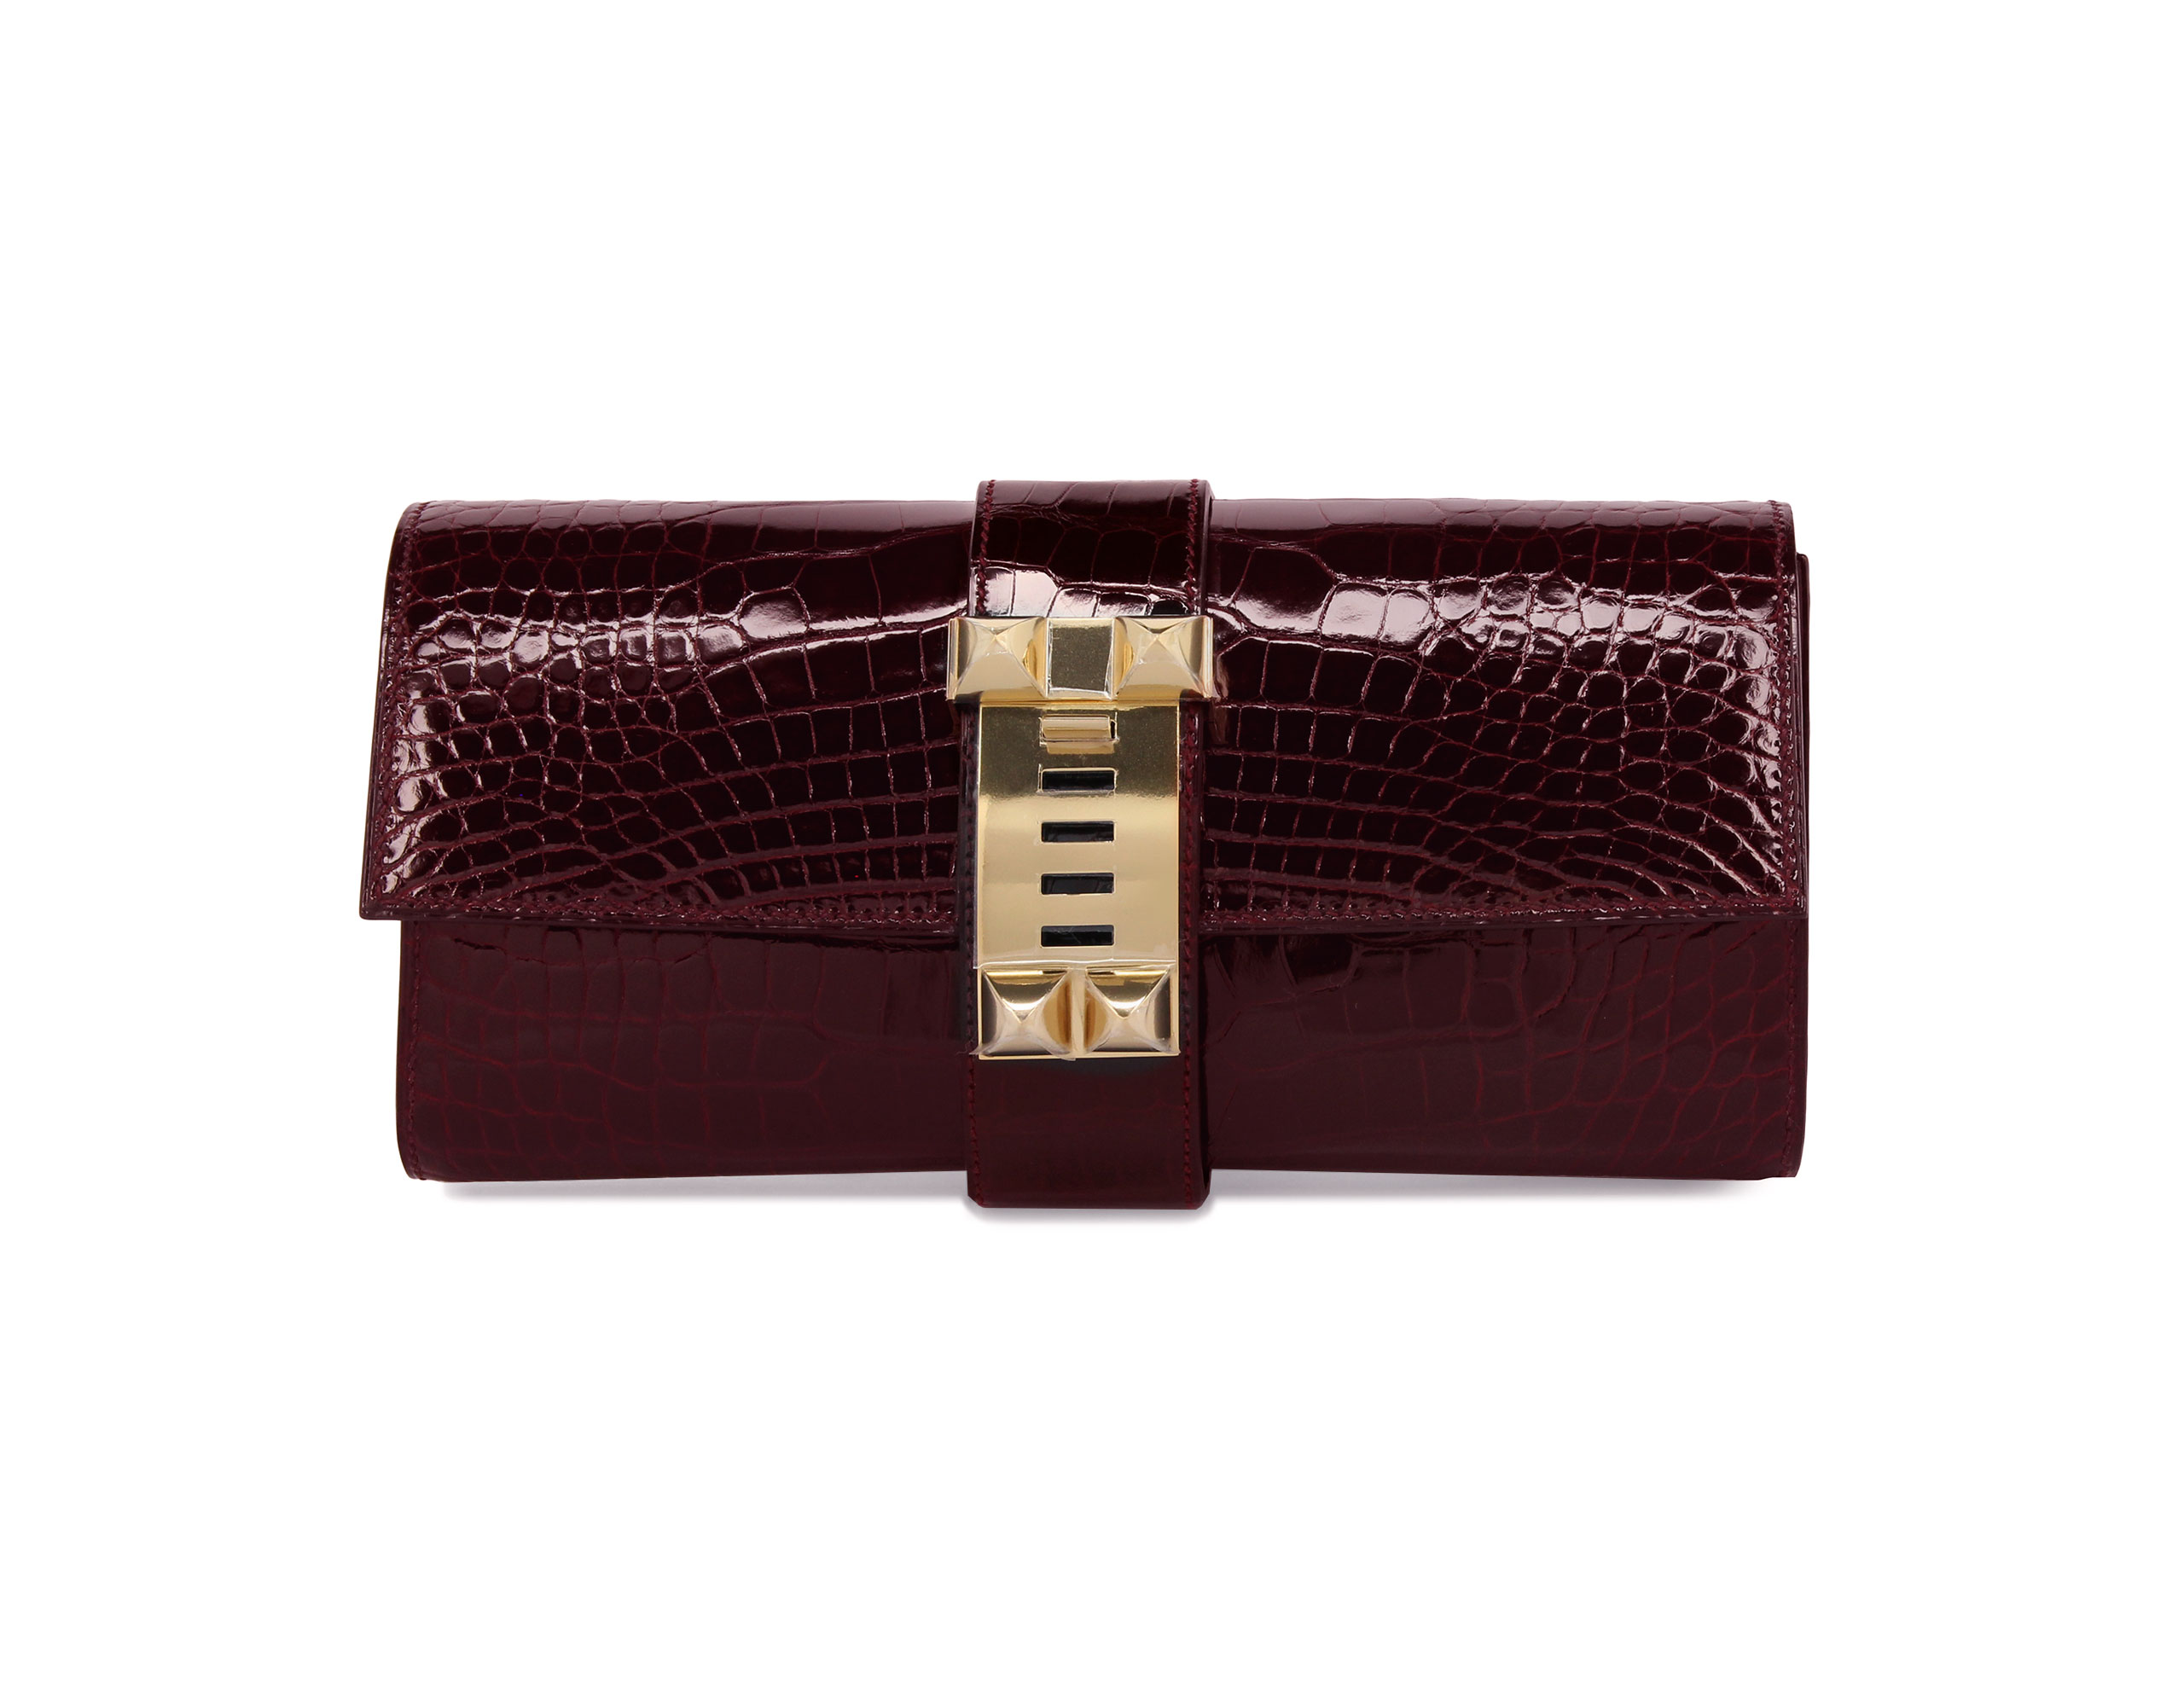 Hermes Medor Bordeaux Shiny Alligator with Gold